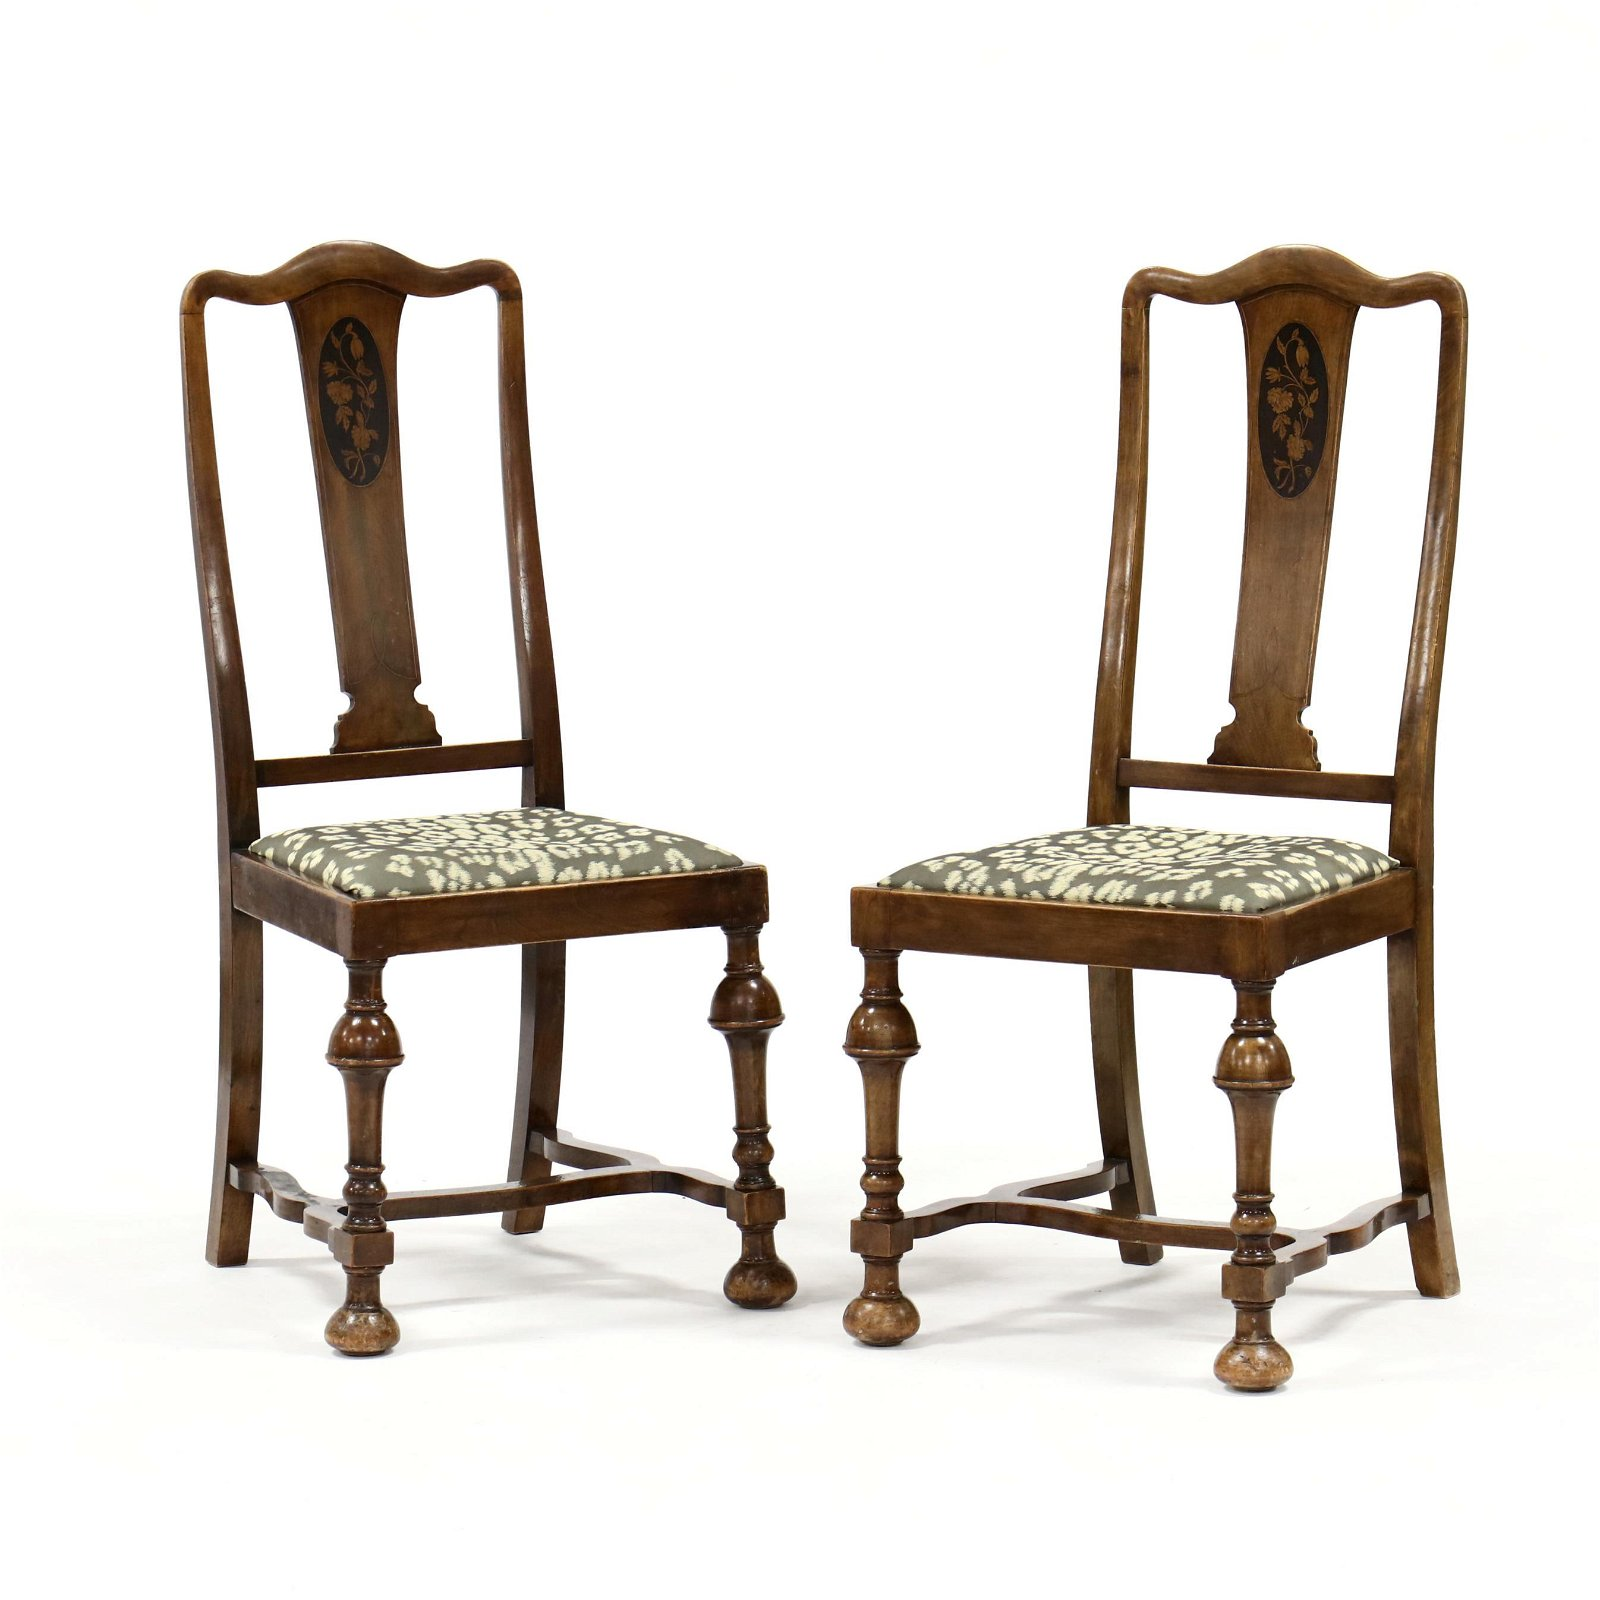 Pair of William and Mary Style Inlaid Chairs